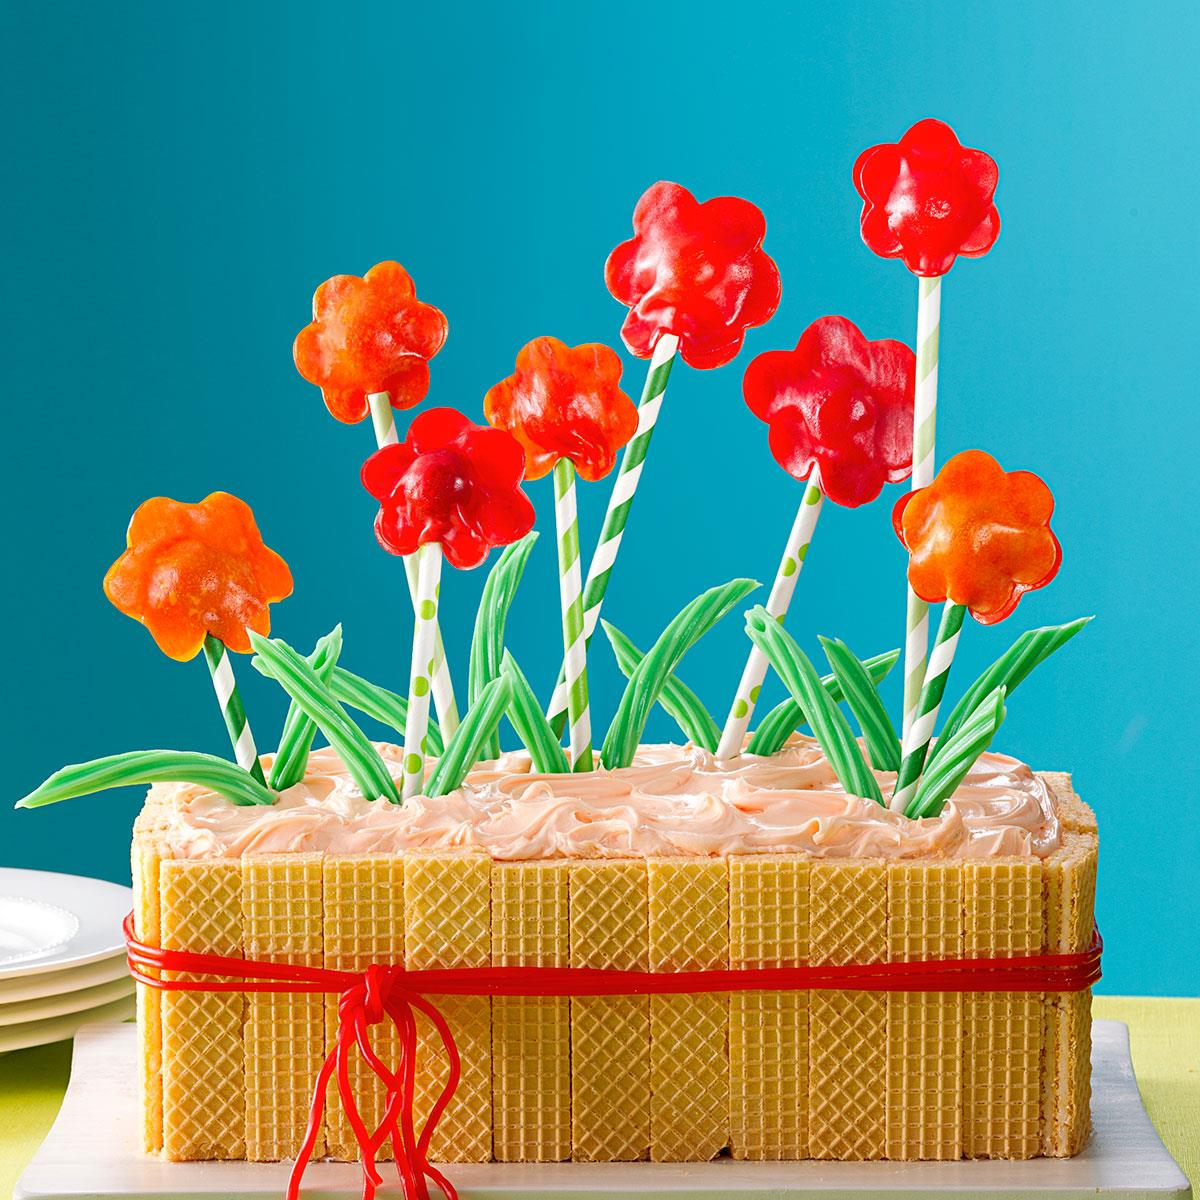 Birthday Cake Decoration Ideas At Home Part - 27: Taste Of Home